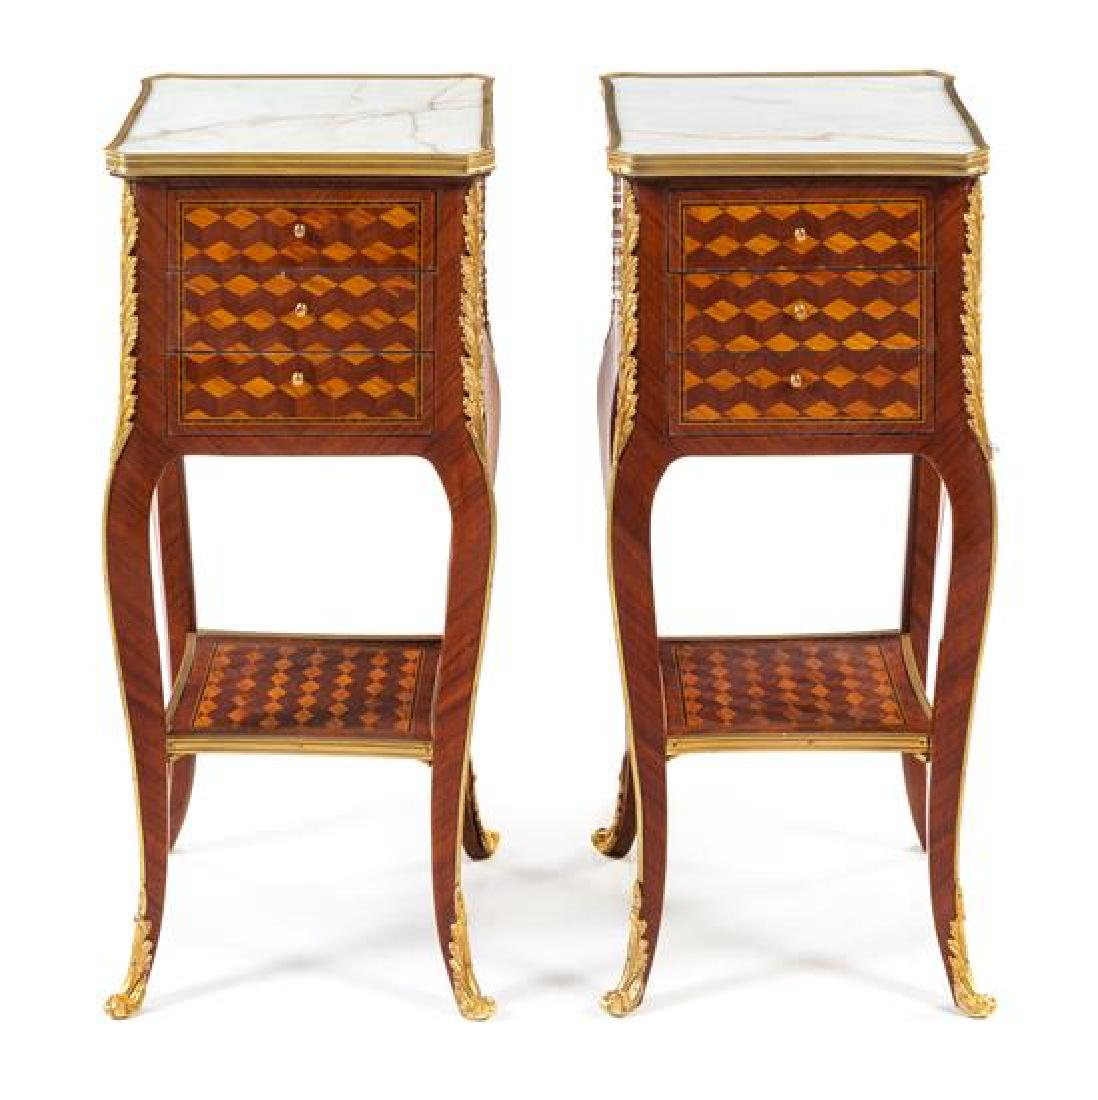 A Pair of Louis XV Style Gilt Bronze Mounted Parquetry